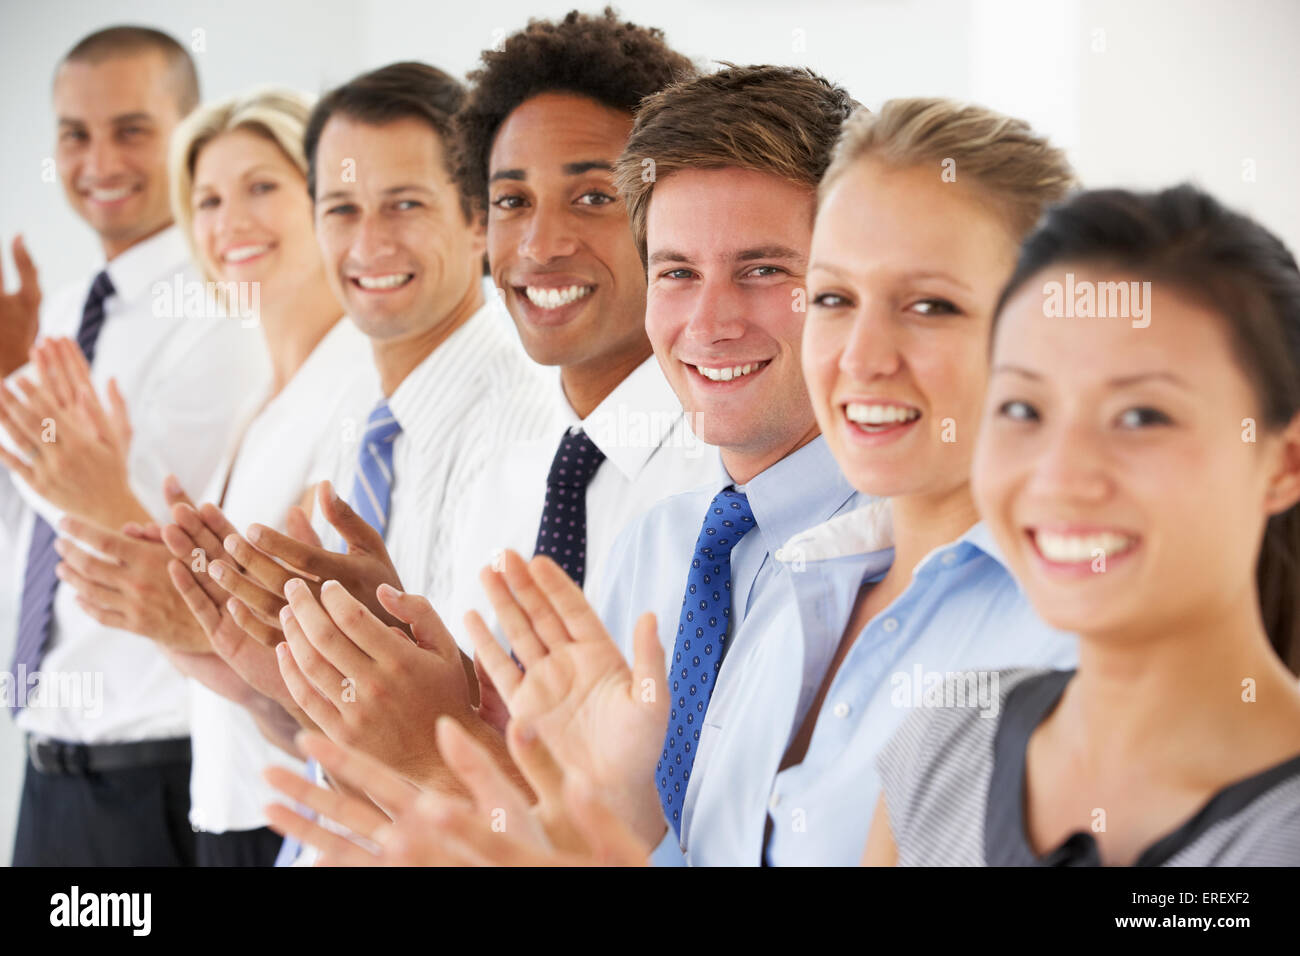 Line Of Happy And Positive Business People Applauding - Stock Image